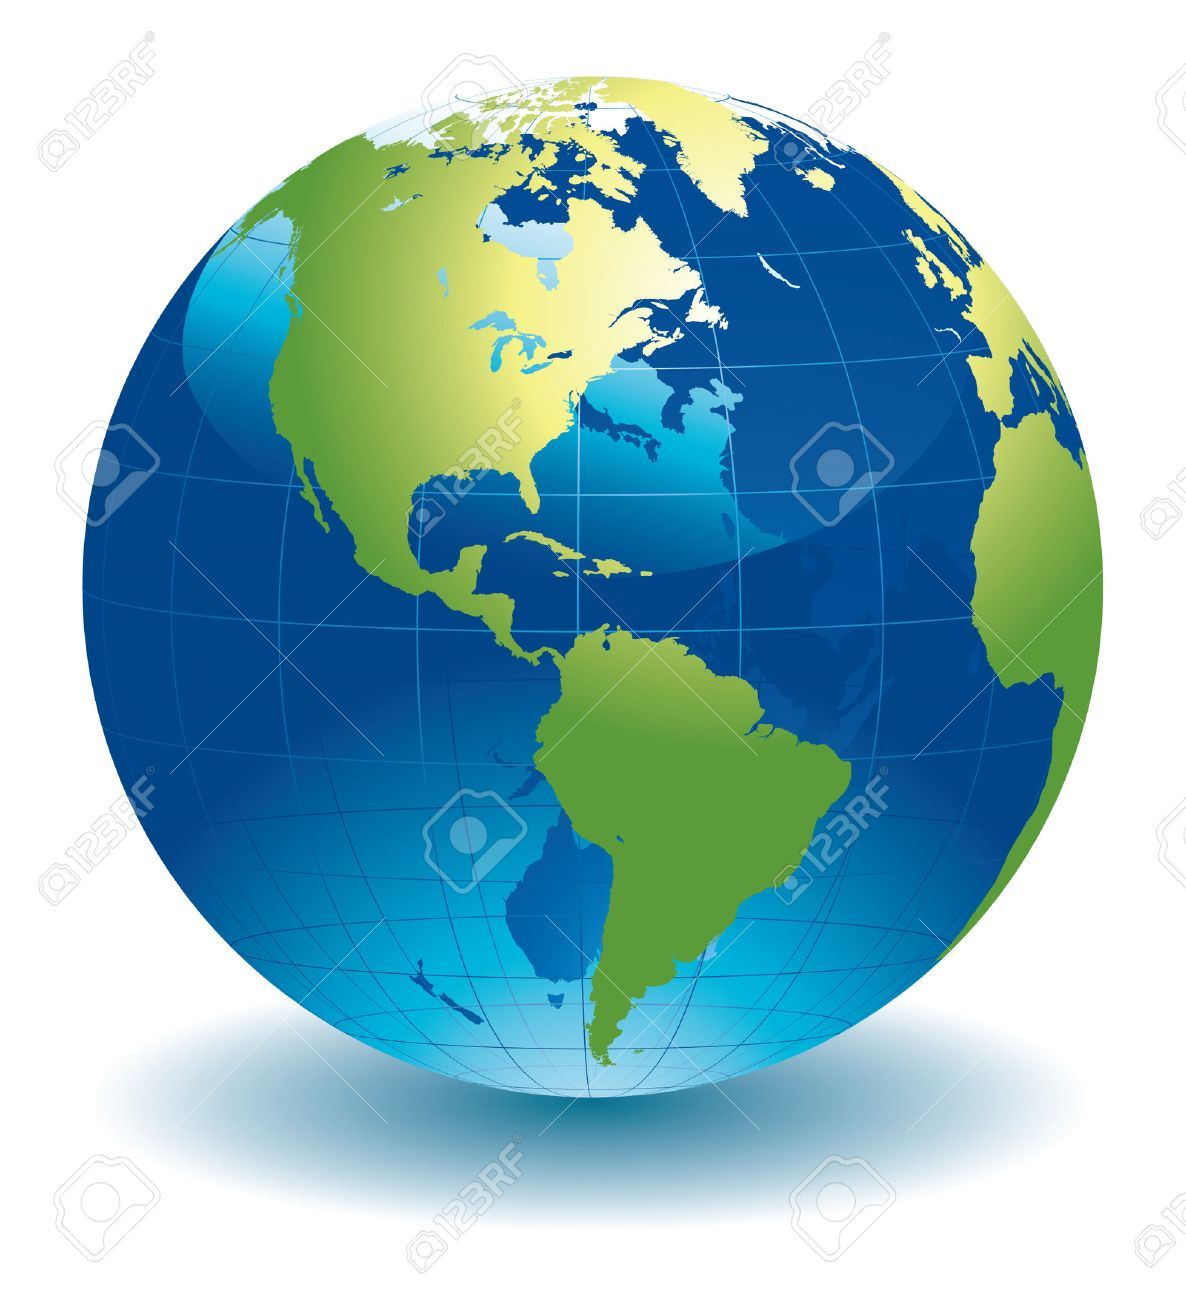 Globe Map D My Blog Earth D Android Apps On Google Play D - Earth globe map